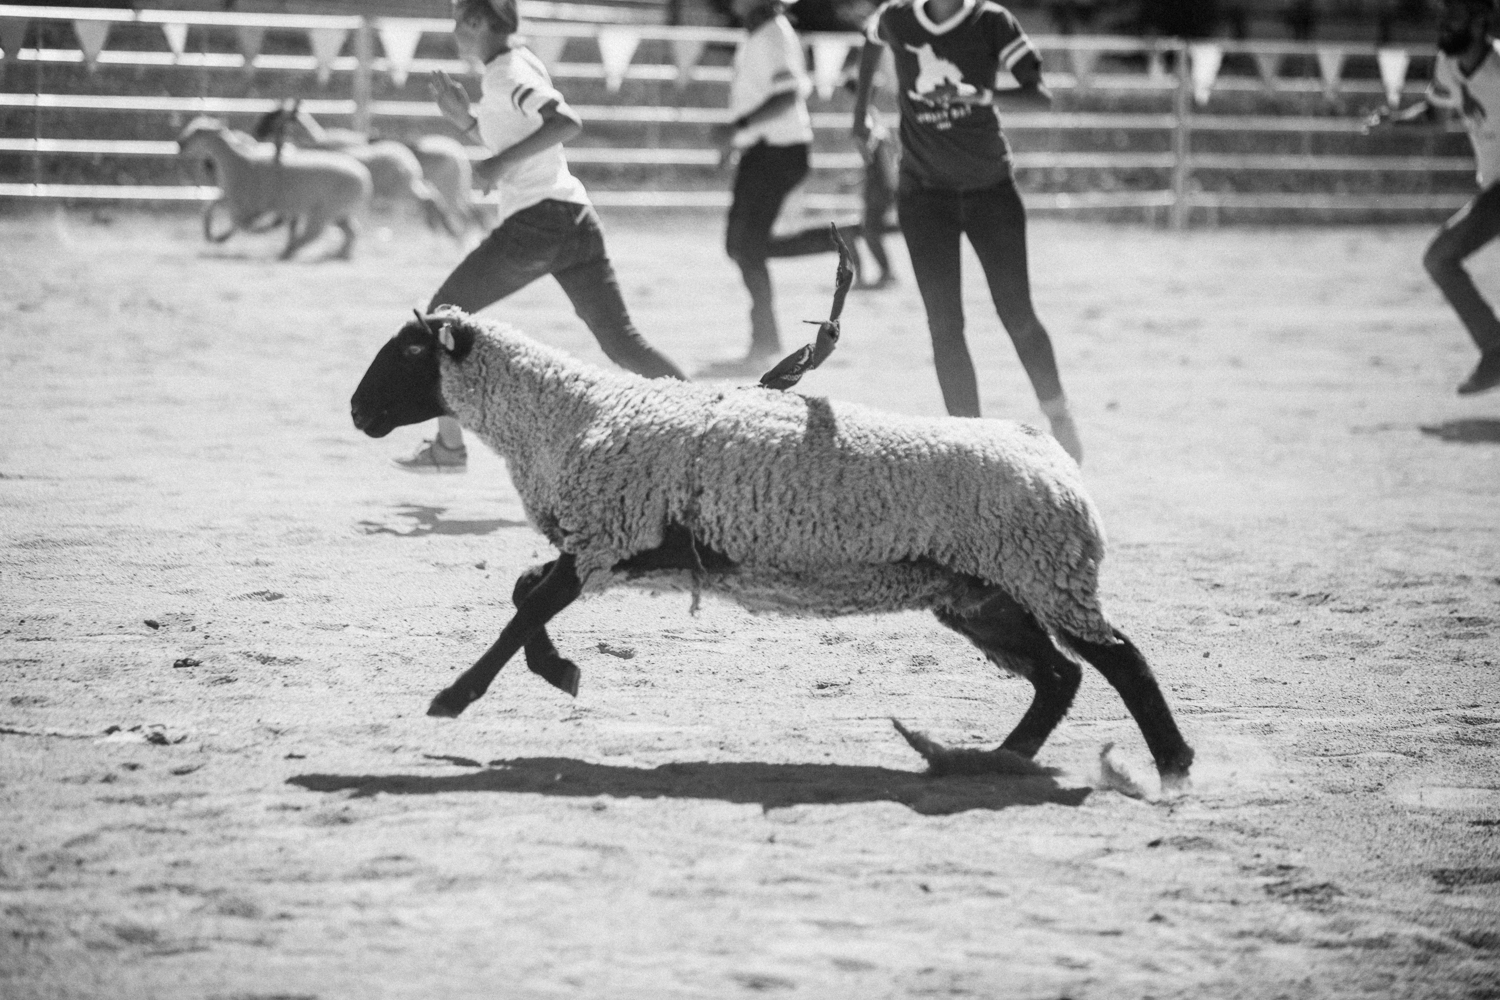 sheep-at-legacy-days-labor-day-family-gathering-park-city-ut